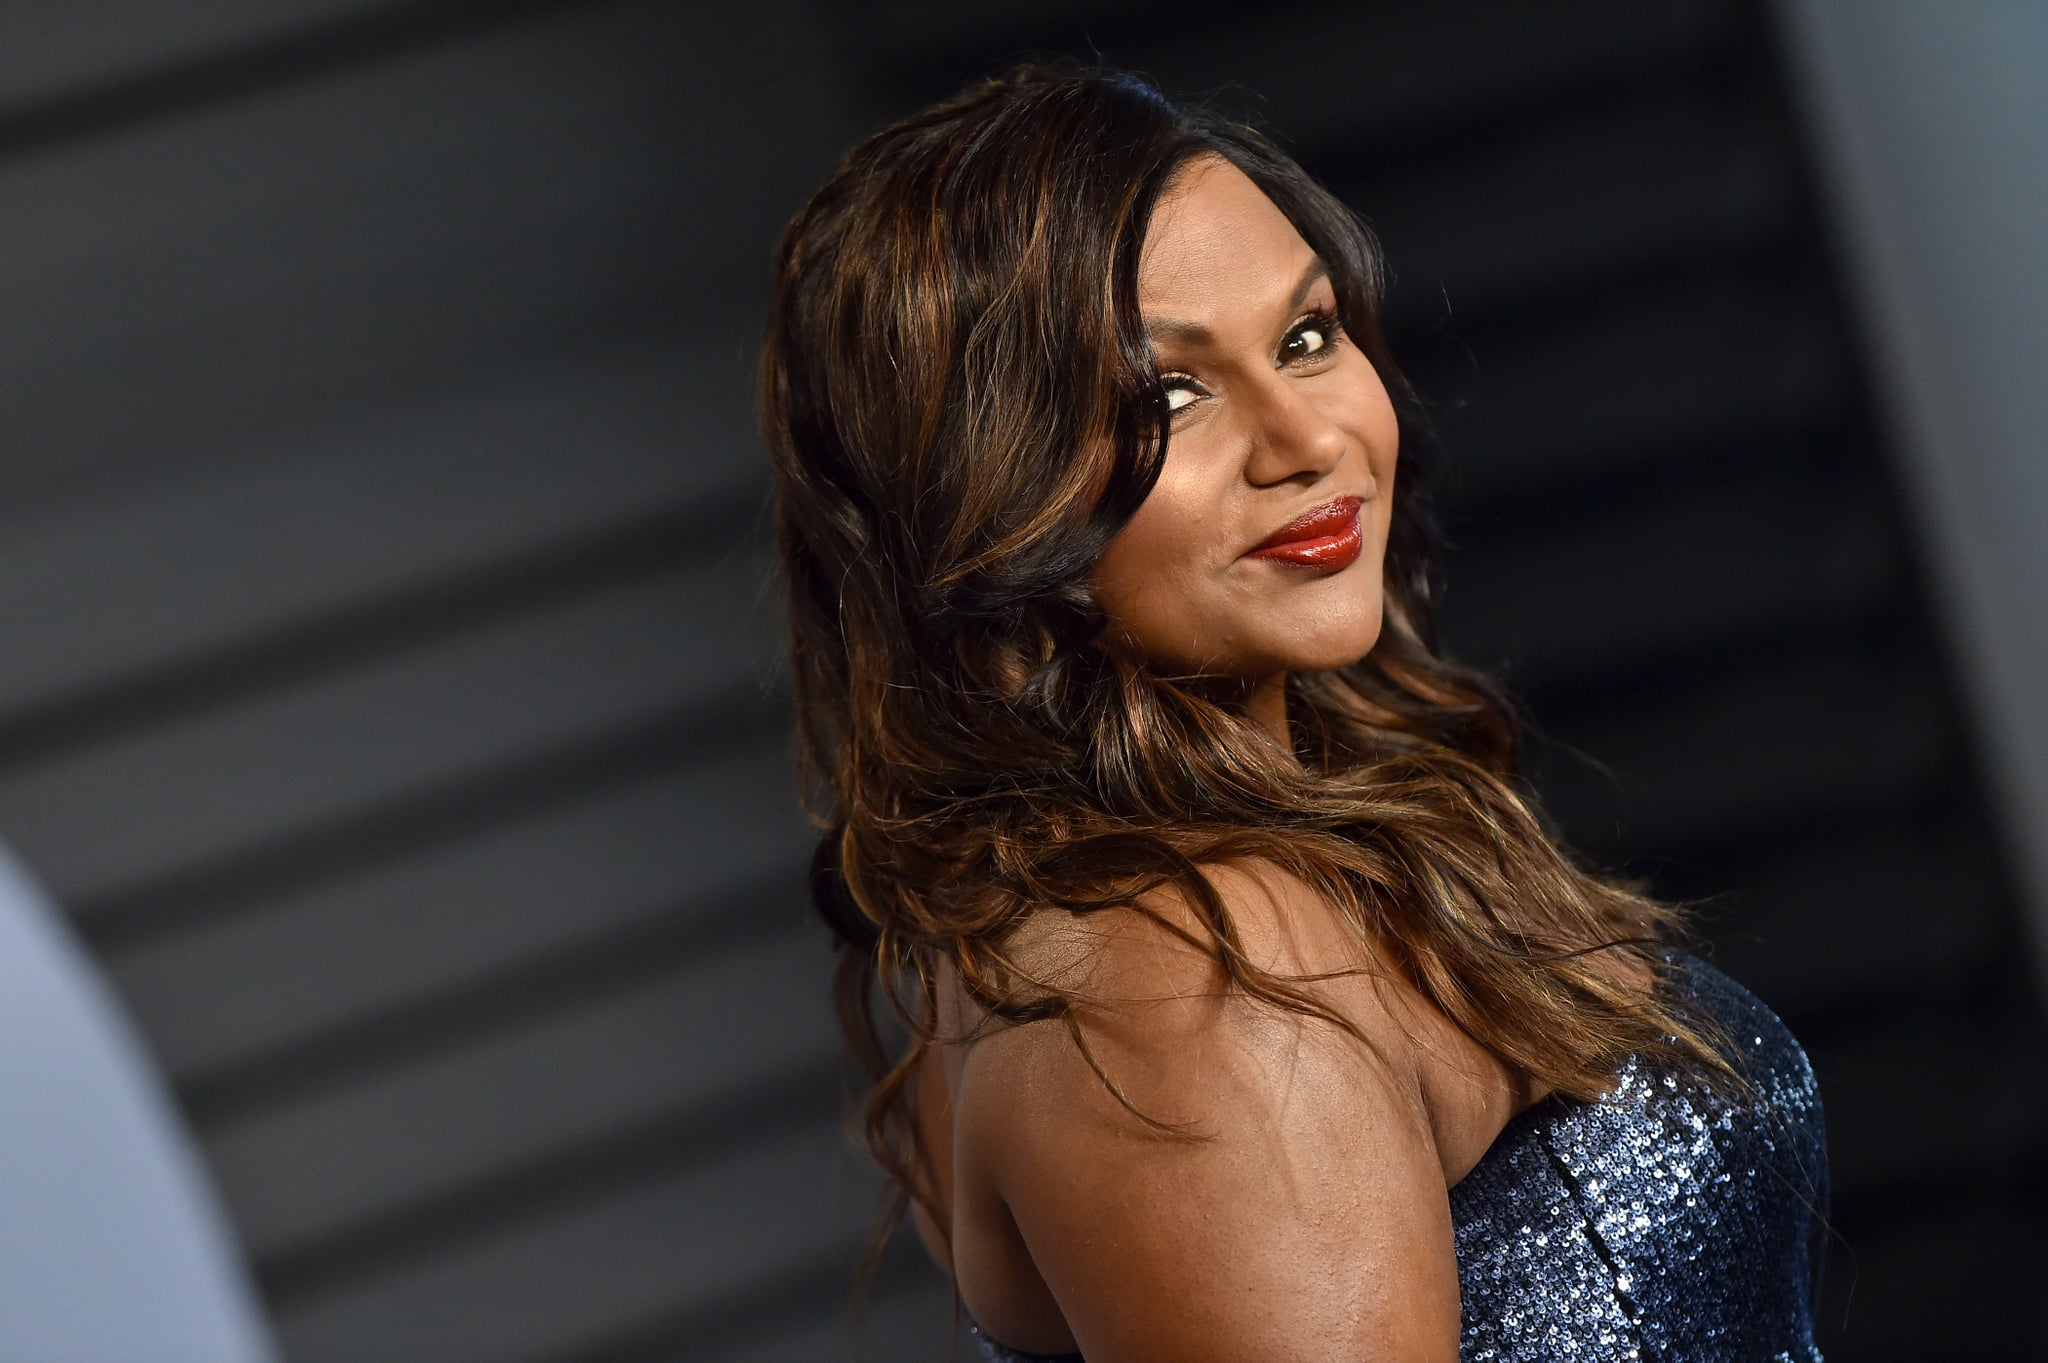 BEVERLY HILLS, CA - MARCH 04:  Actress Mindy Kaling attends the 2018 Vanity Fair Oscar Party hosted by Radhika Jones at Wallis Annenberg Center for the Performing Arts on March 4, 2018 in Beverly Hills, California.  (Photo by Axelle/Bauer-Griffin/FilmMagic)